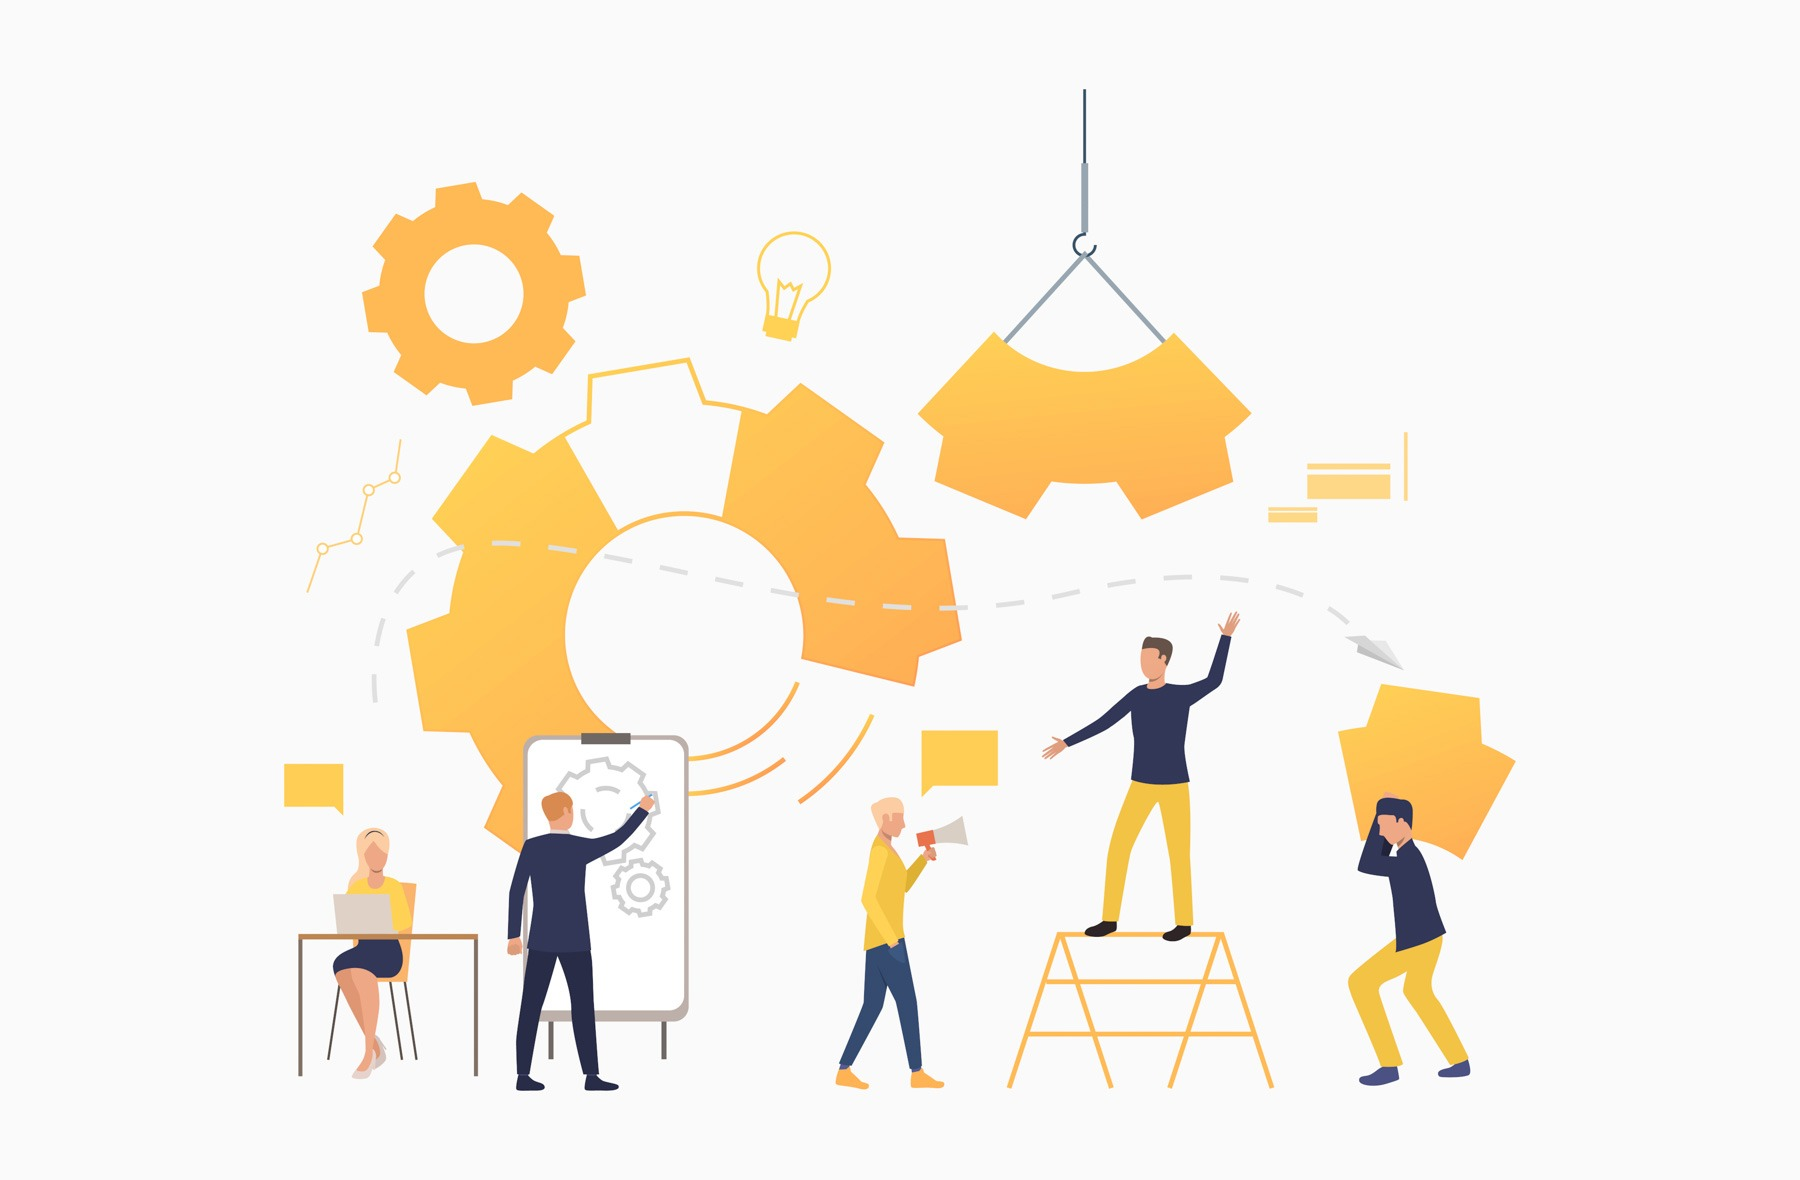 Business team working as mechanism. Operation, teamwork, brainstorming. Management concept. Vector illustration can be used for presentation slide, posters, banners